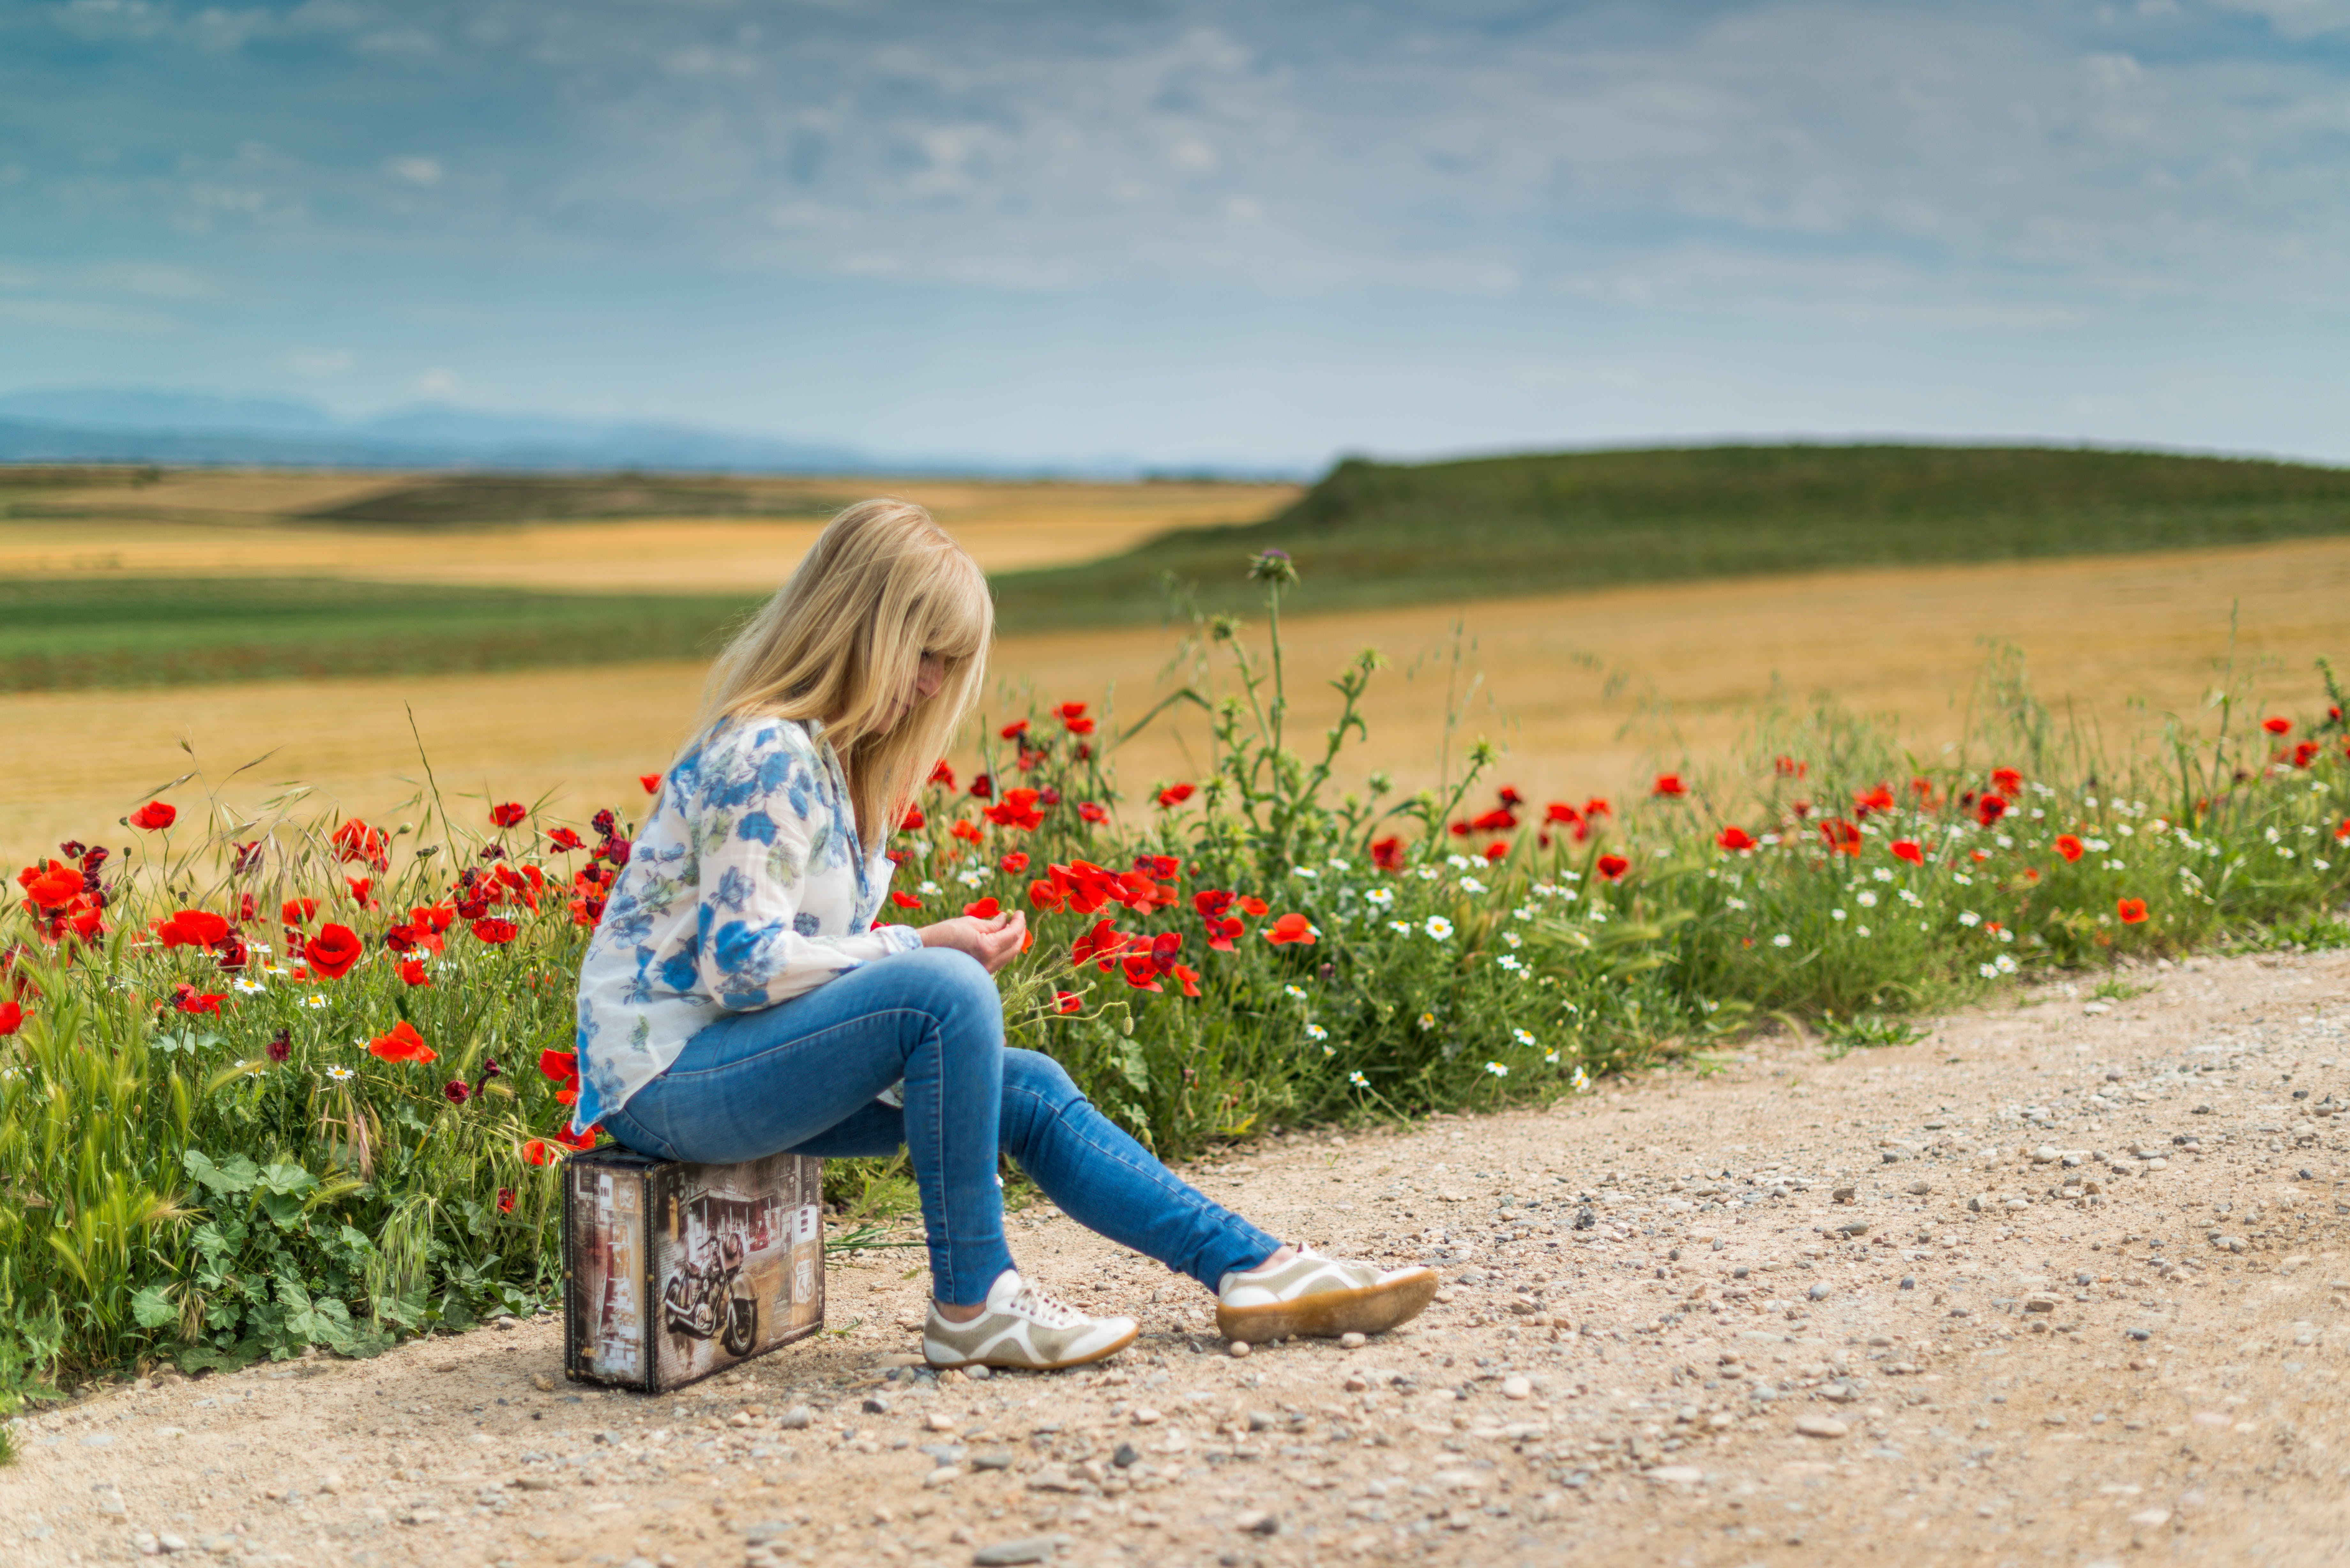 Girl Near Red Petal Flowers at Daytime